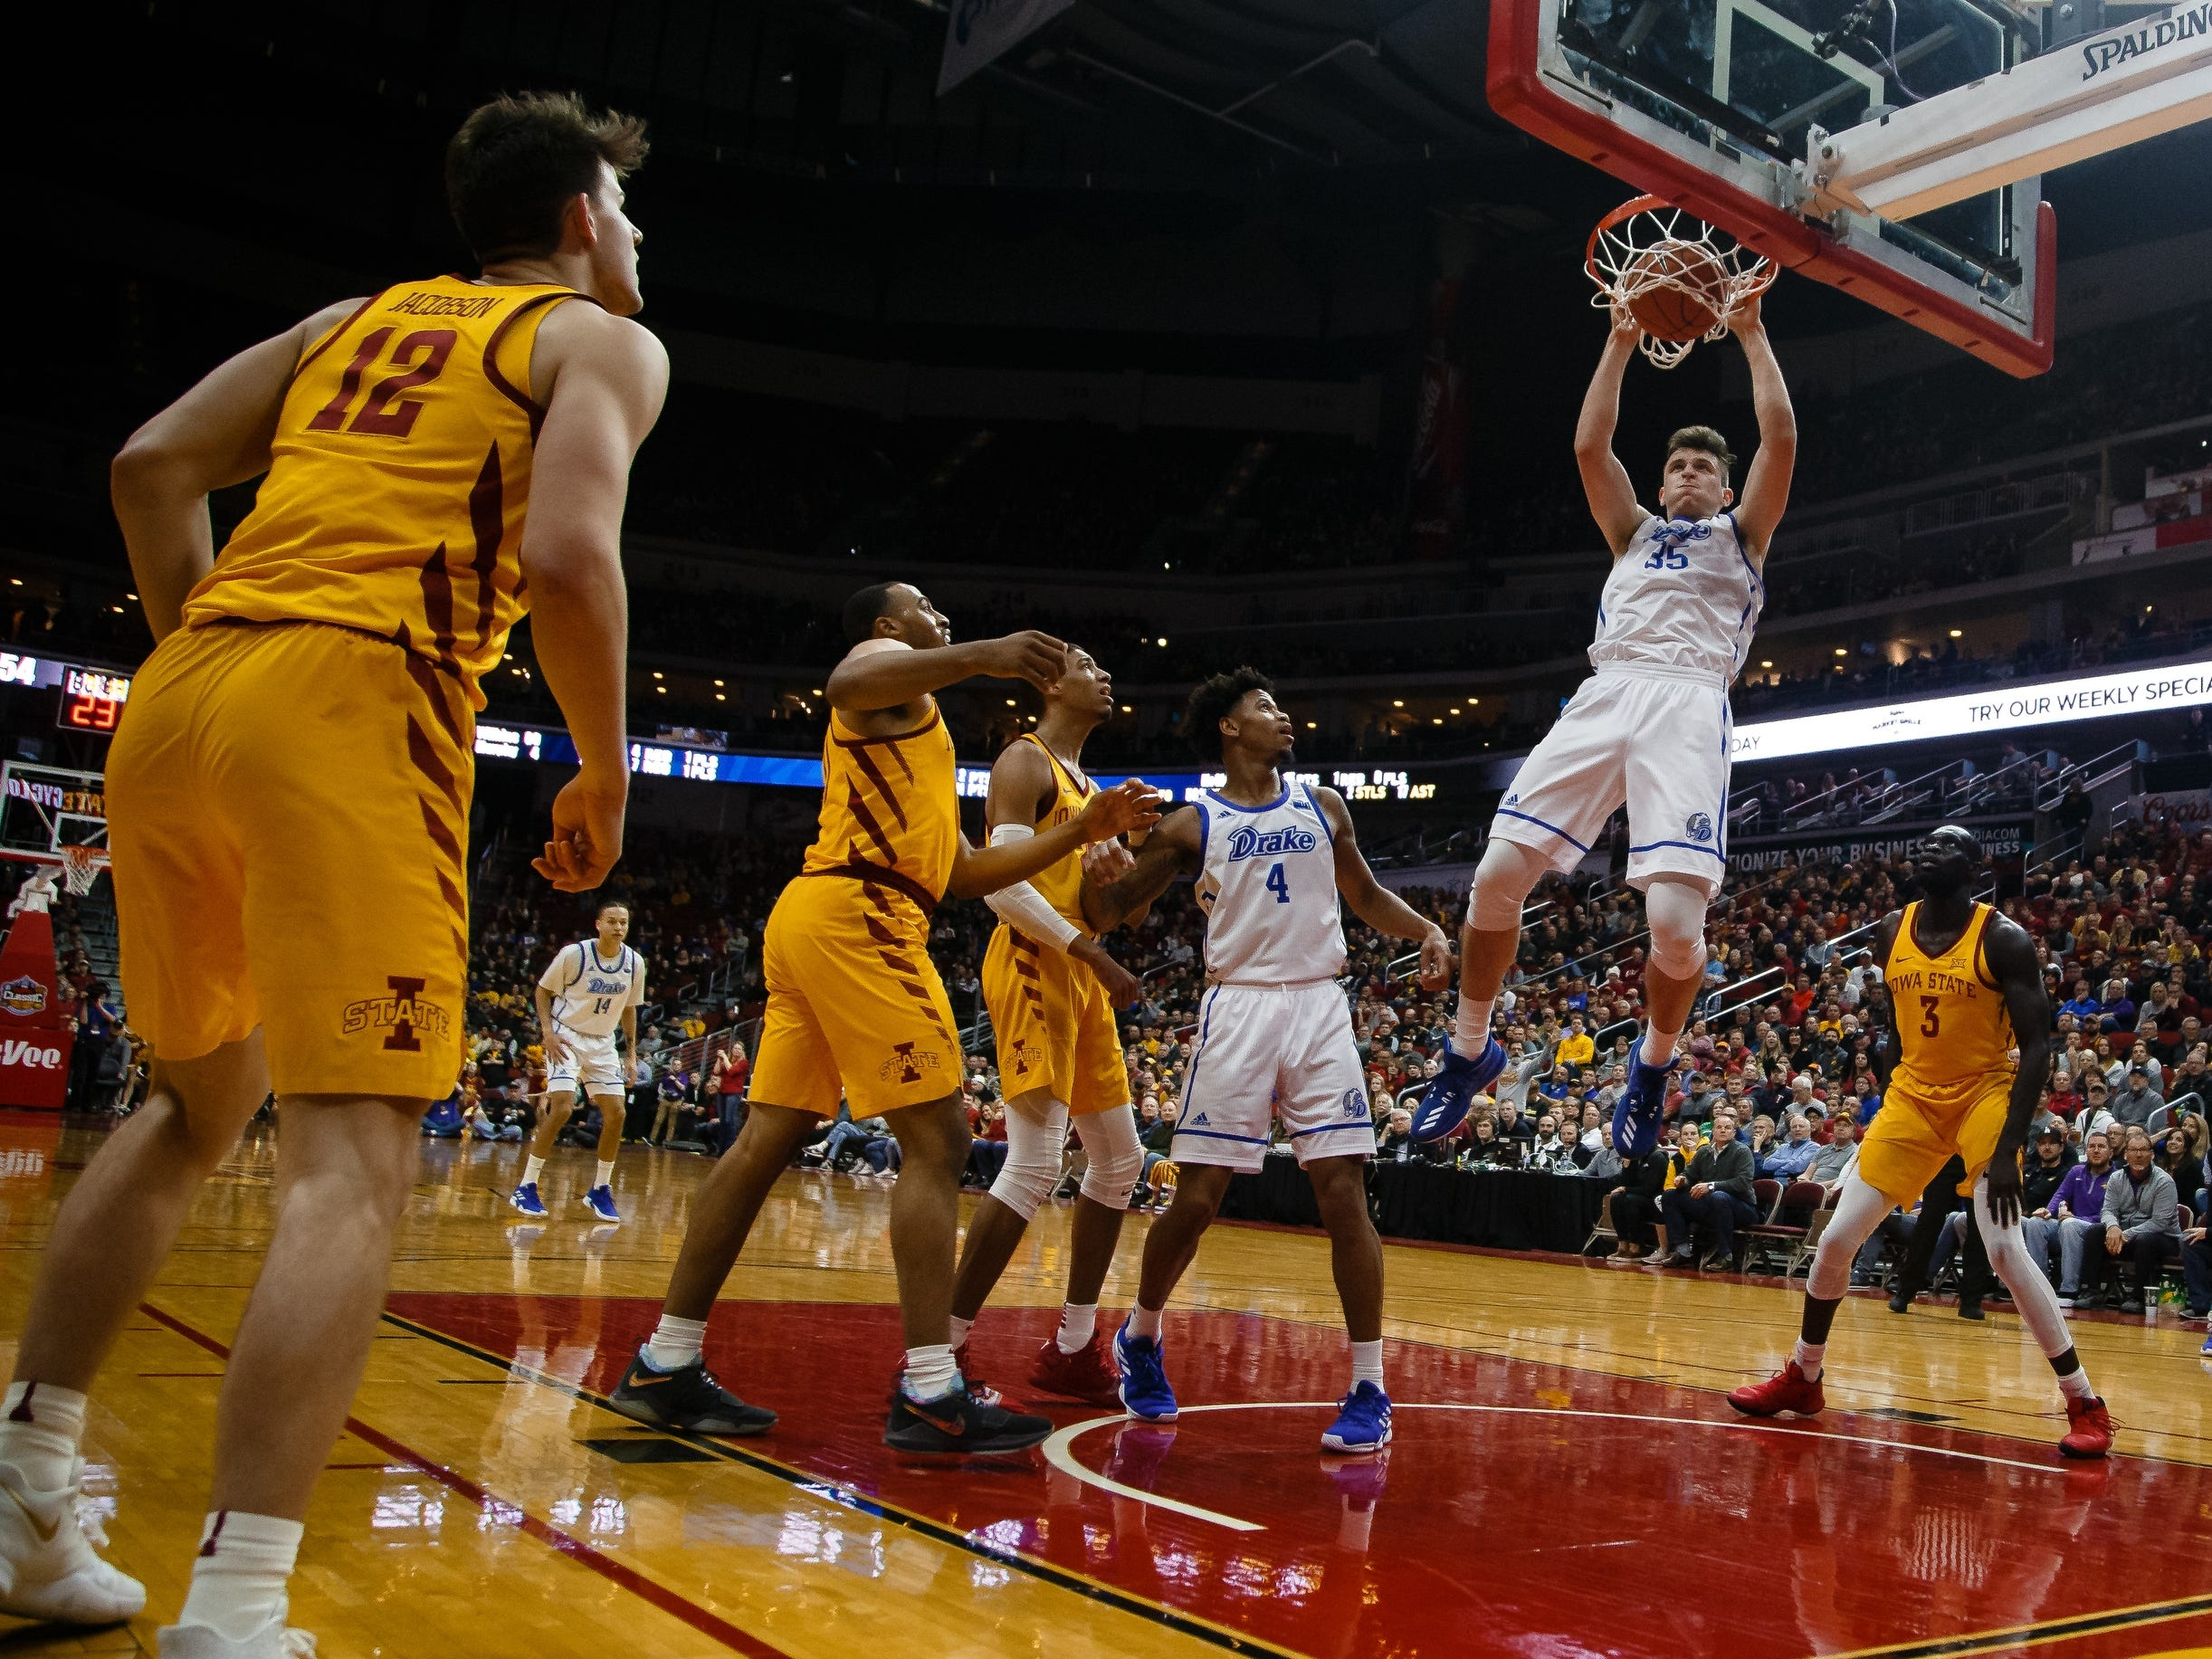 Drake's NickÊMcGlynn (35) dunks the  ball during their basketball game at the Hy-Vee Classic on Saturday, Dec. 15, 2018, in Des Moines. Iowa State would go on to defeat Drake 77-68.